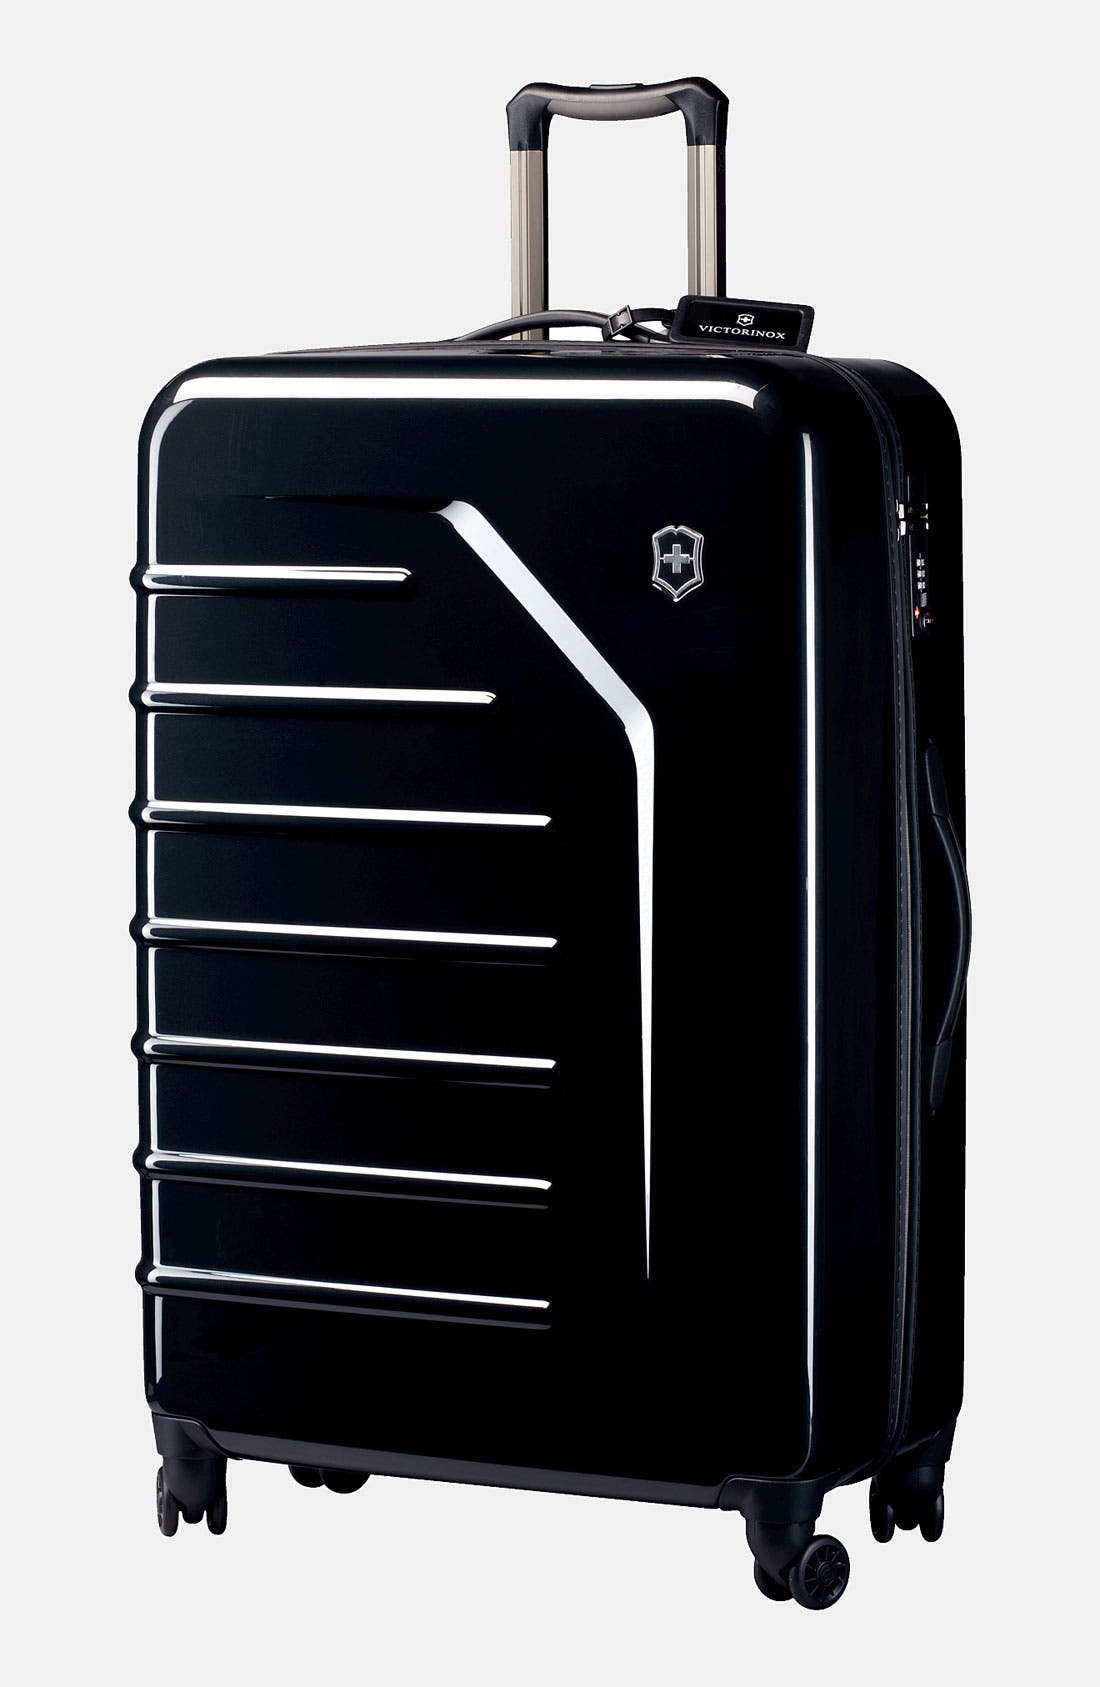 Alternate Image 1 Selected - Victorinox Swiss Army® 'Spectra' Rolling Suitcase (32 Inch)